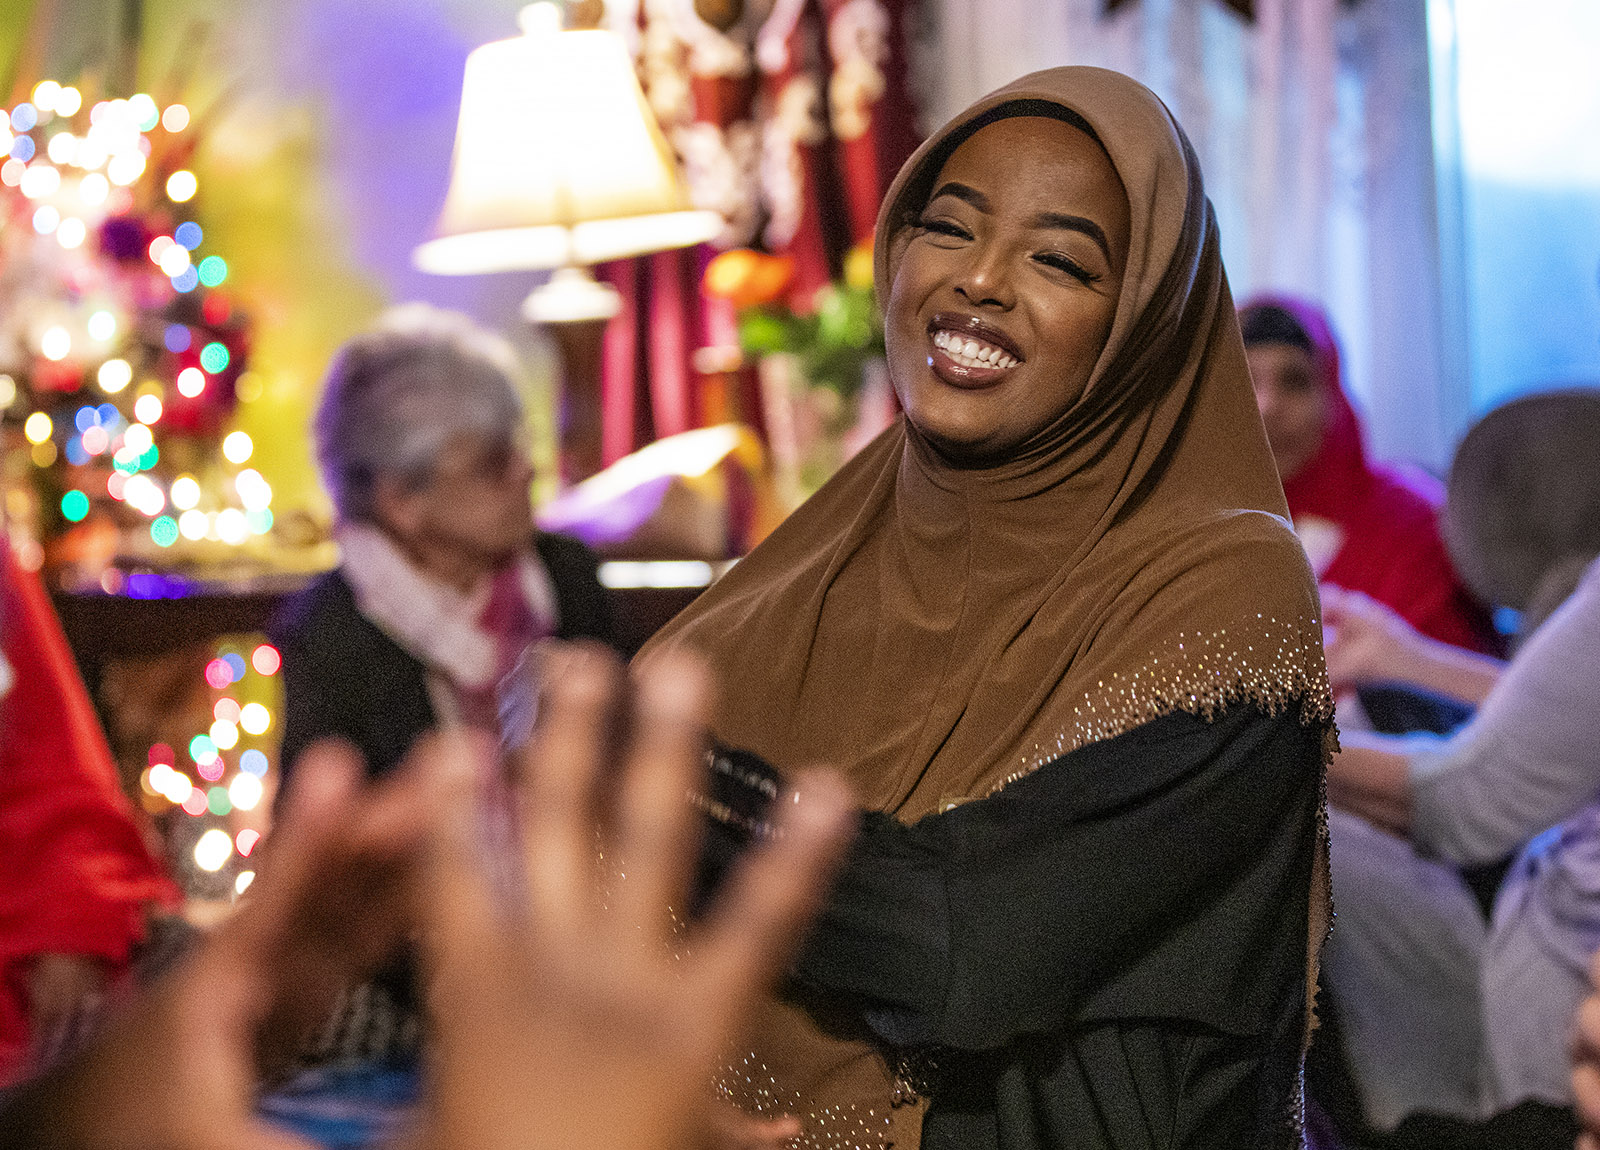 Fosia Omar, a student at St. Cloud State University, enjoying conversation with friends as they waited for the sun to set so that they could break fast, Waite Park, Minnesota, May 25, 2018